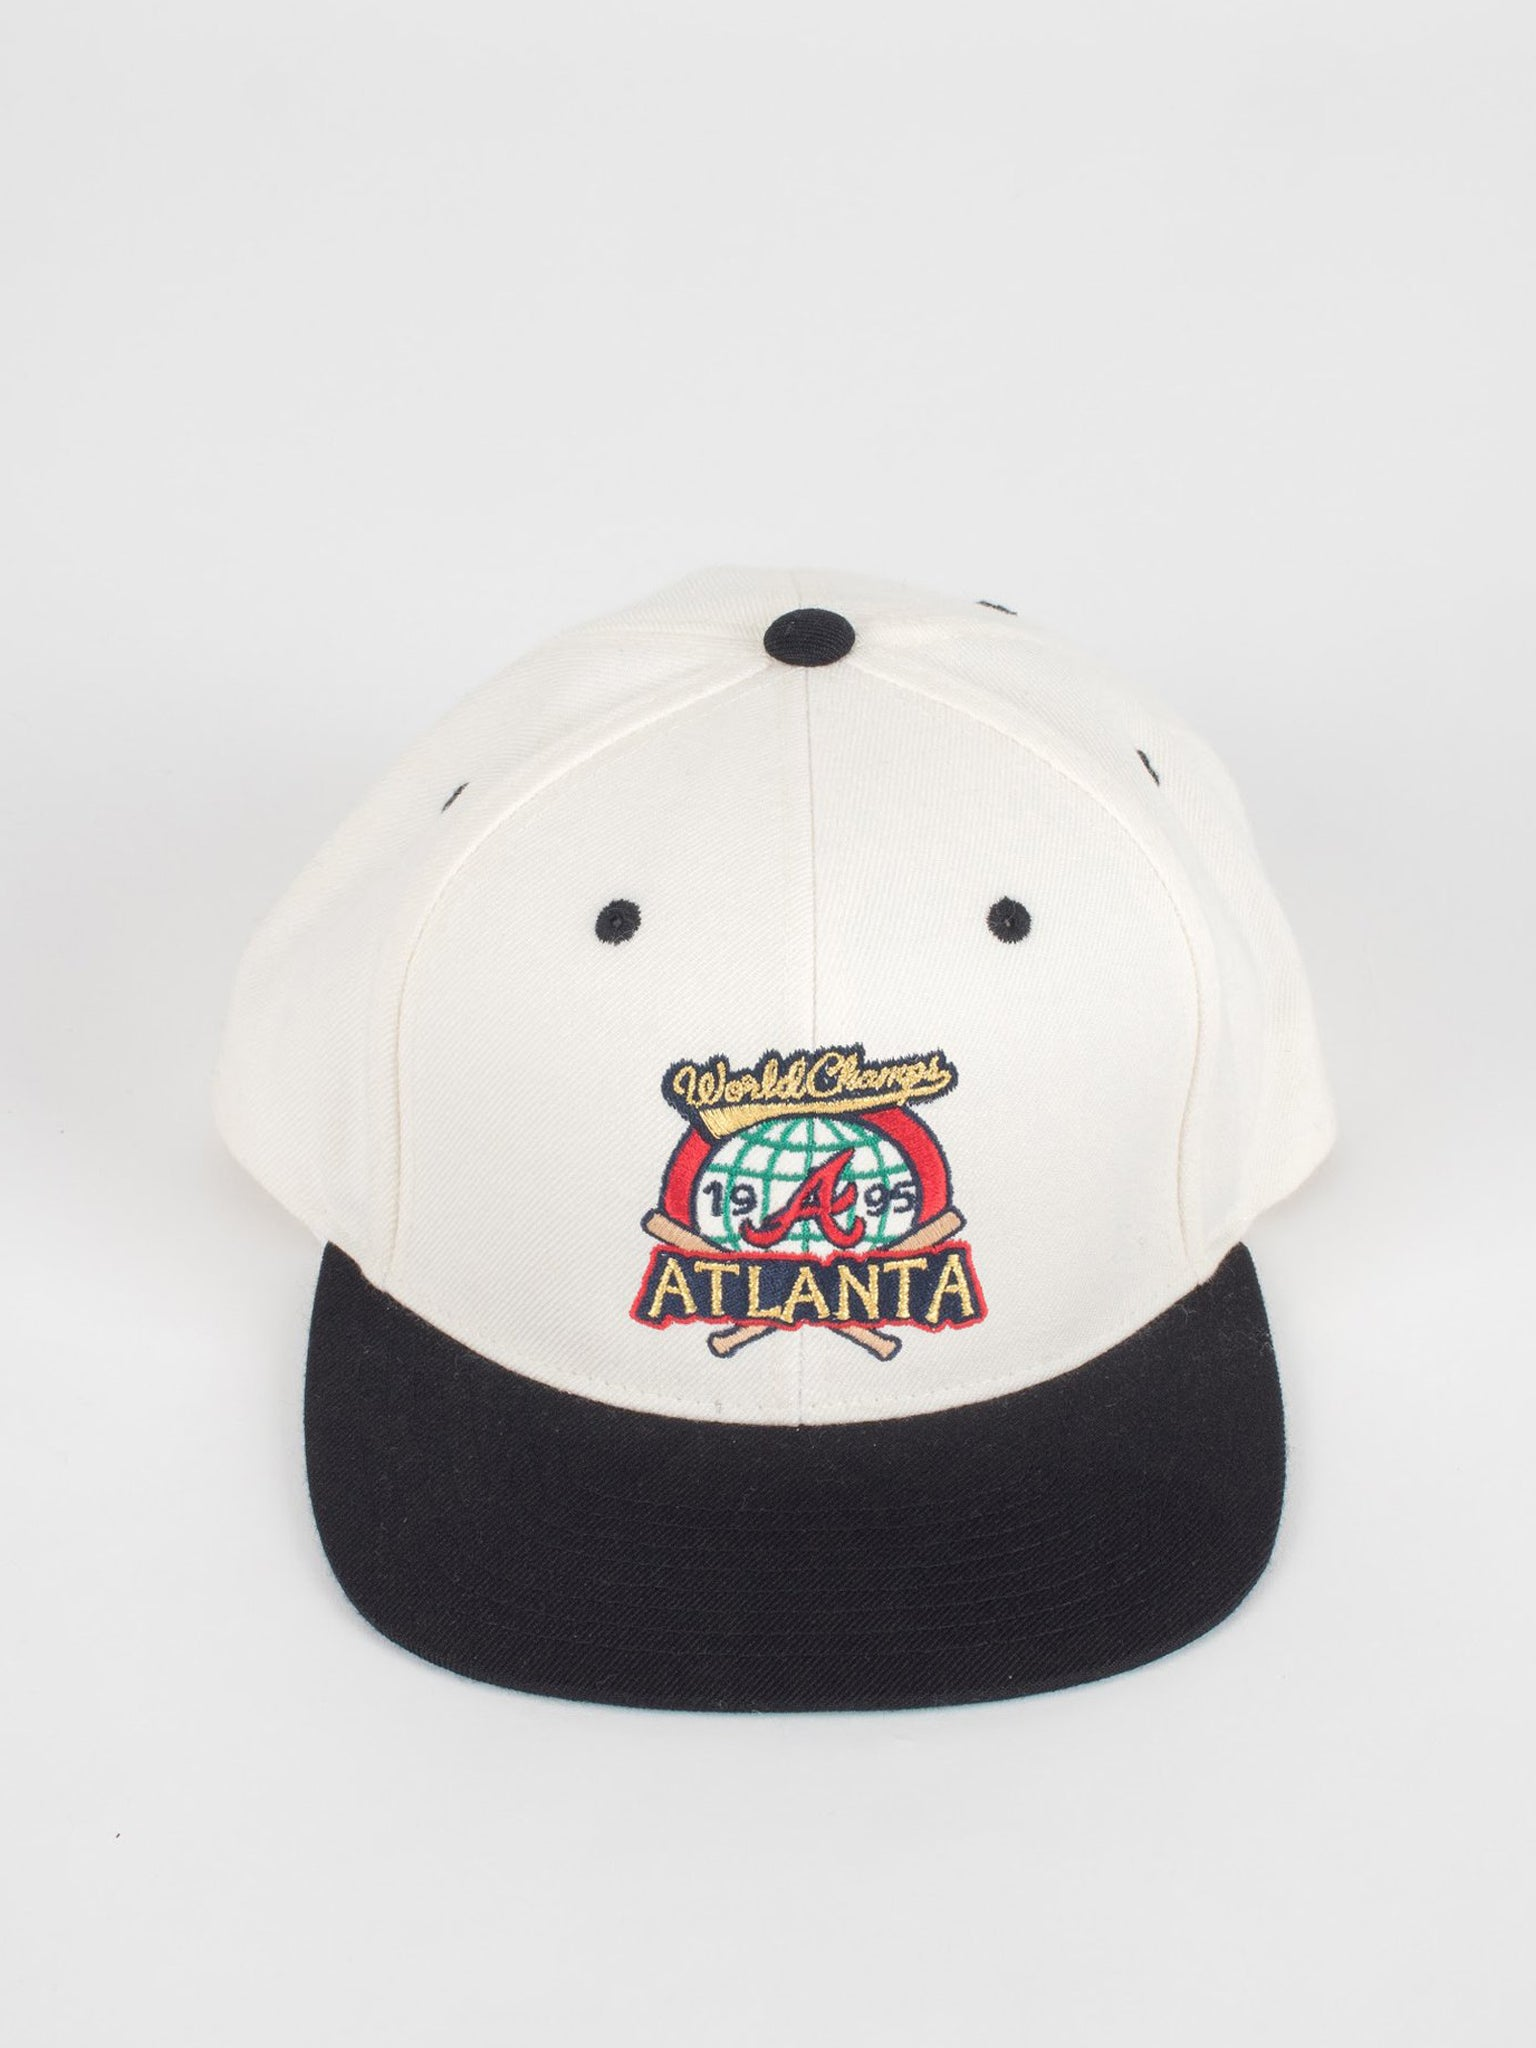 atl1996 25th Anniversary Limited Edition Snapback Hat